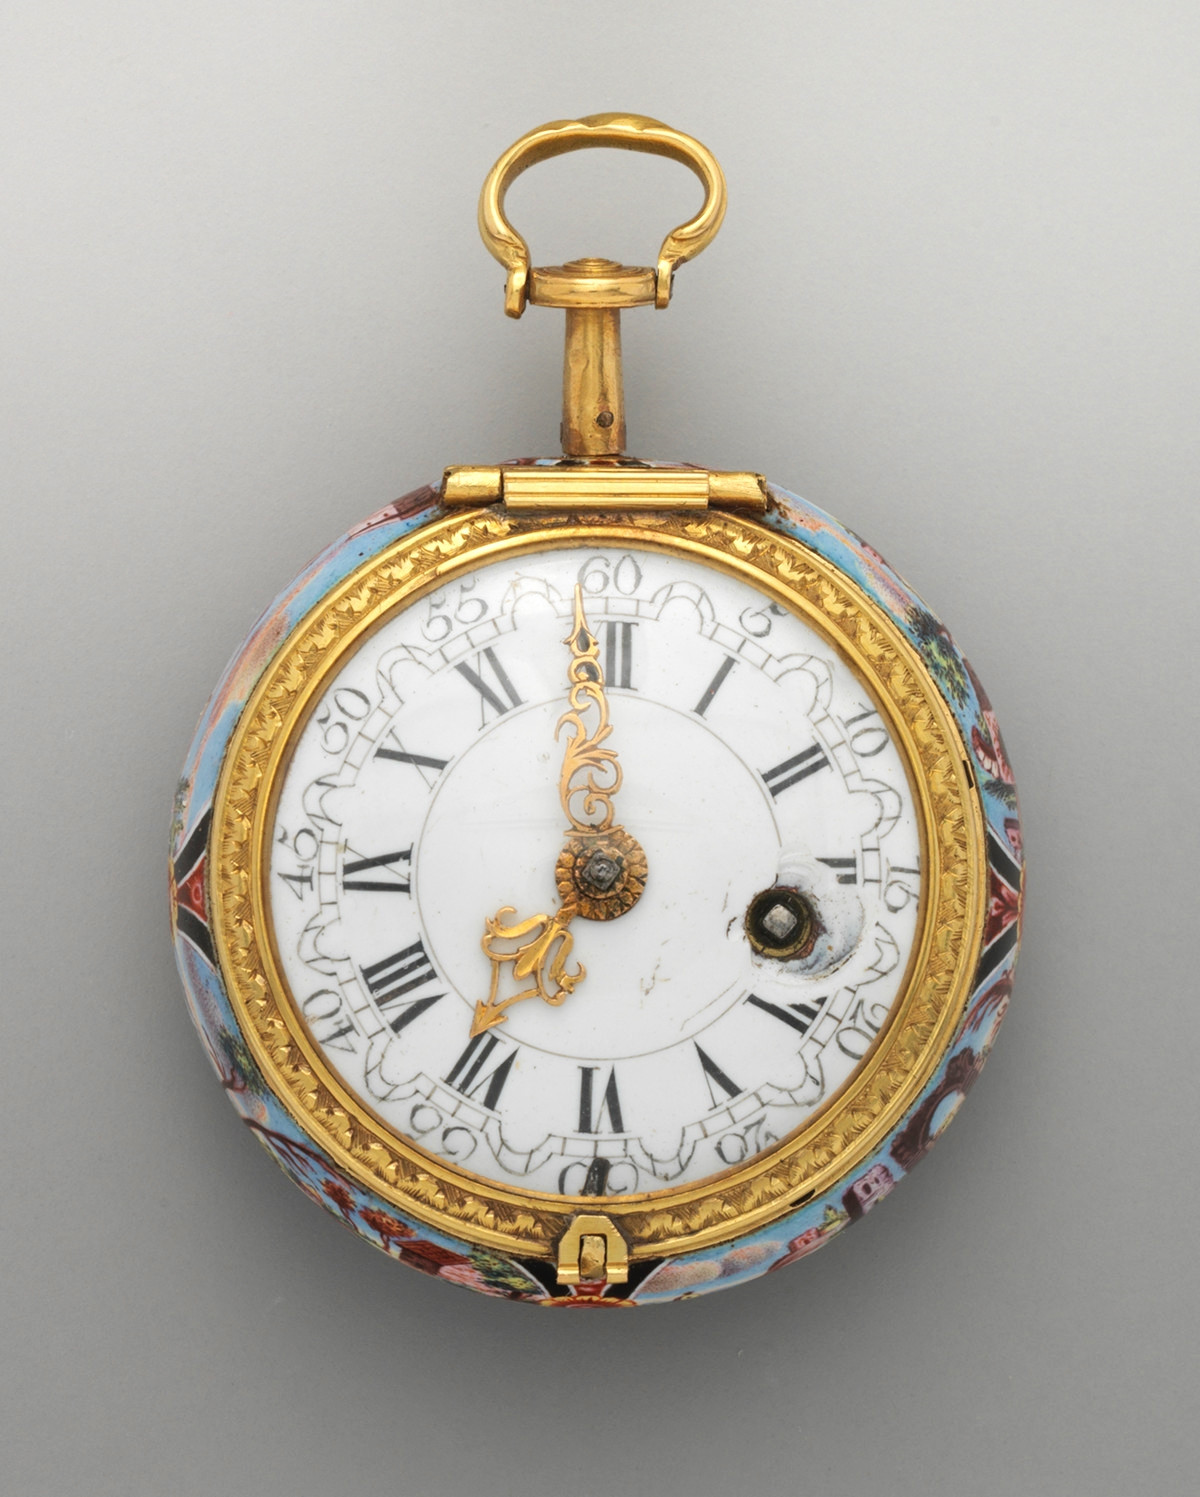 1740. Watch. British, London. Enamel, silver. metmuseum